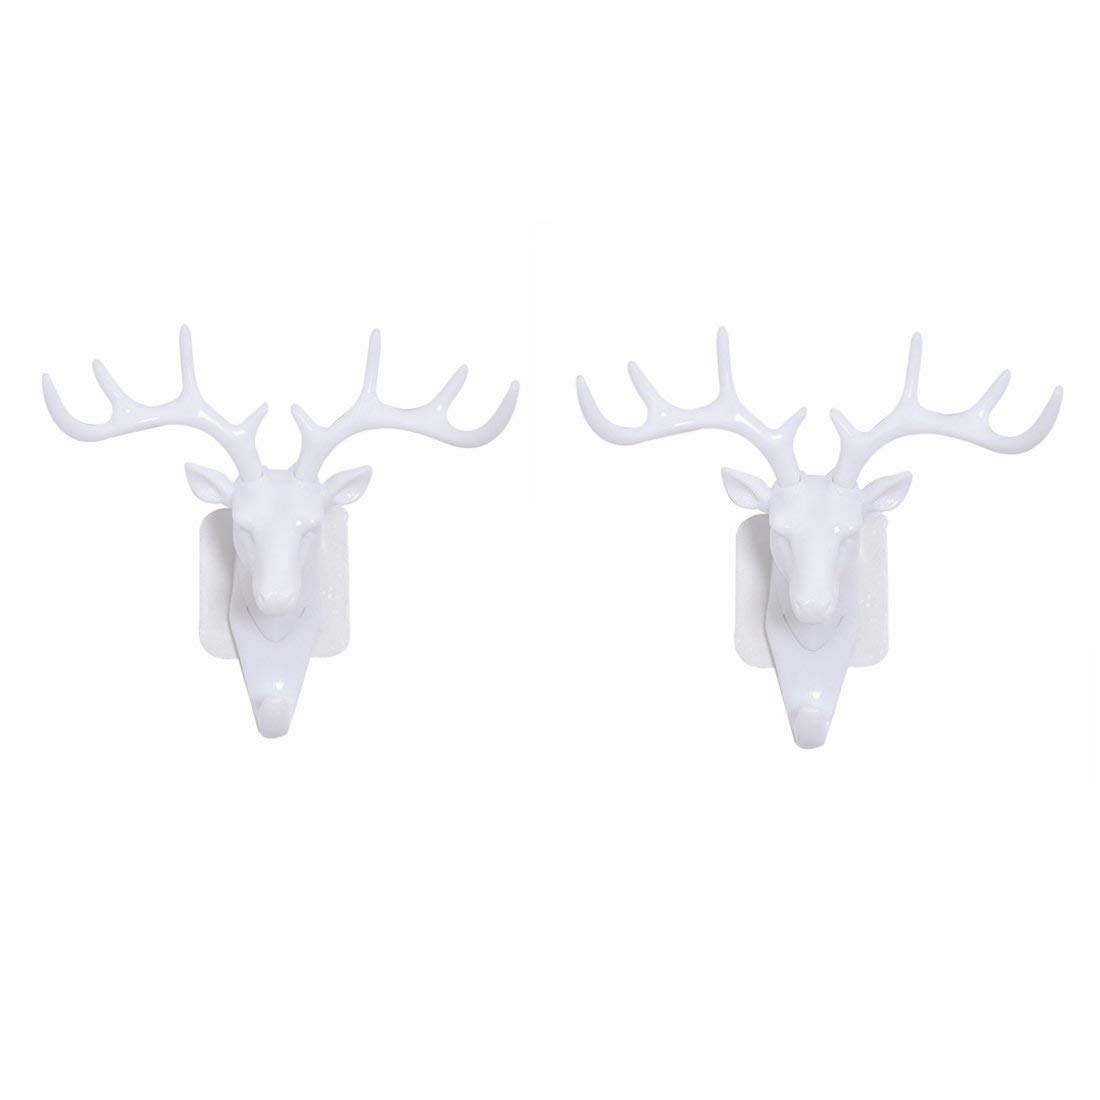 Haoun 2 Pack Decorative Wall Hooks, Deer Head Wall Decor Vintage Hat Hooks Wall Mounted Hanging Wall Organizer